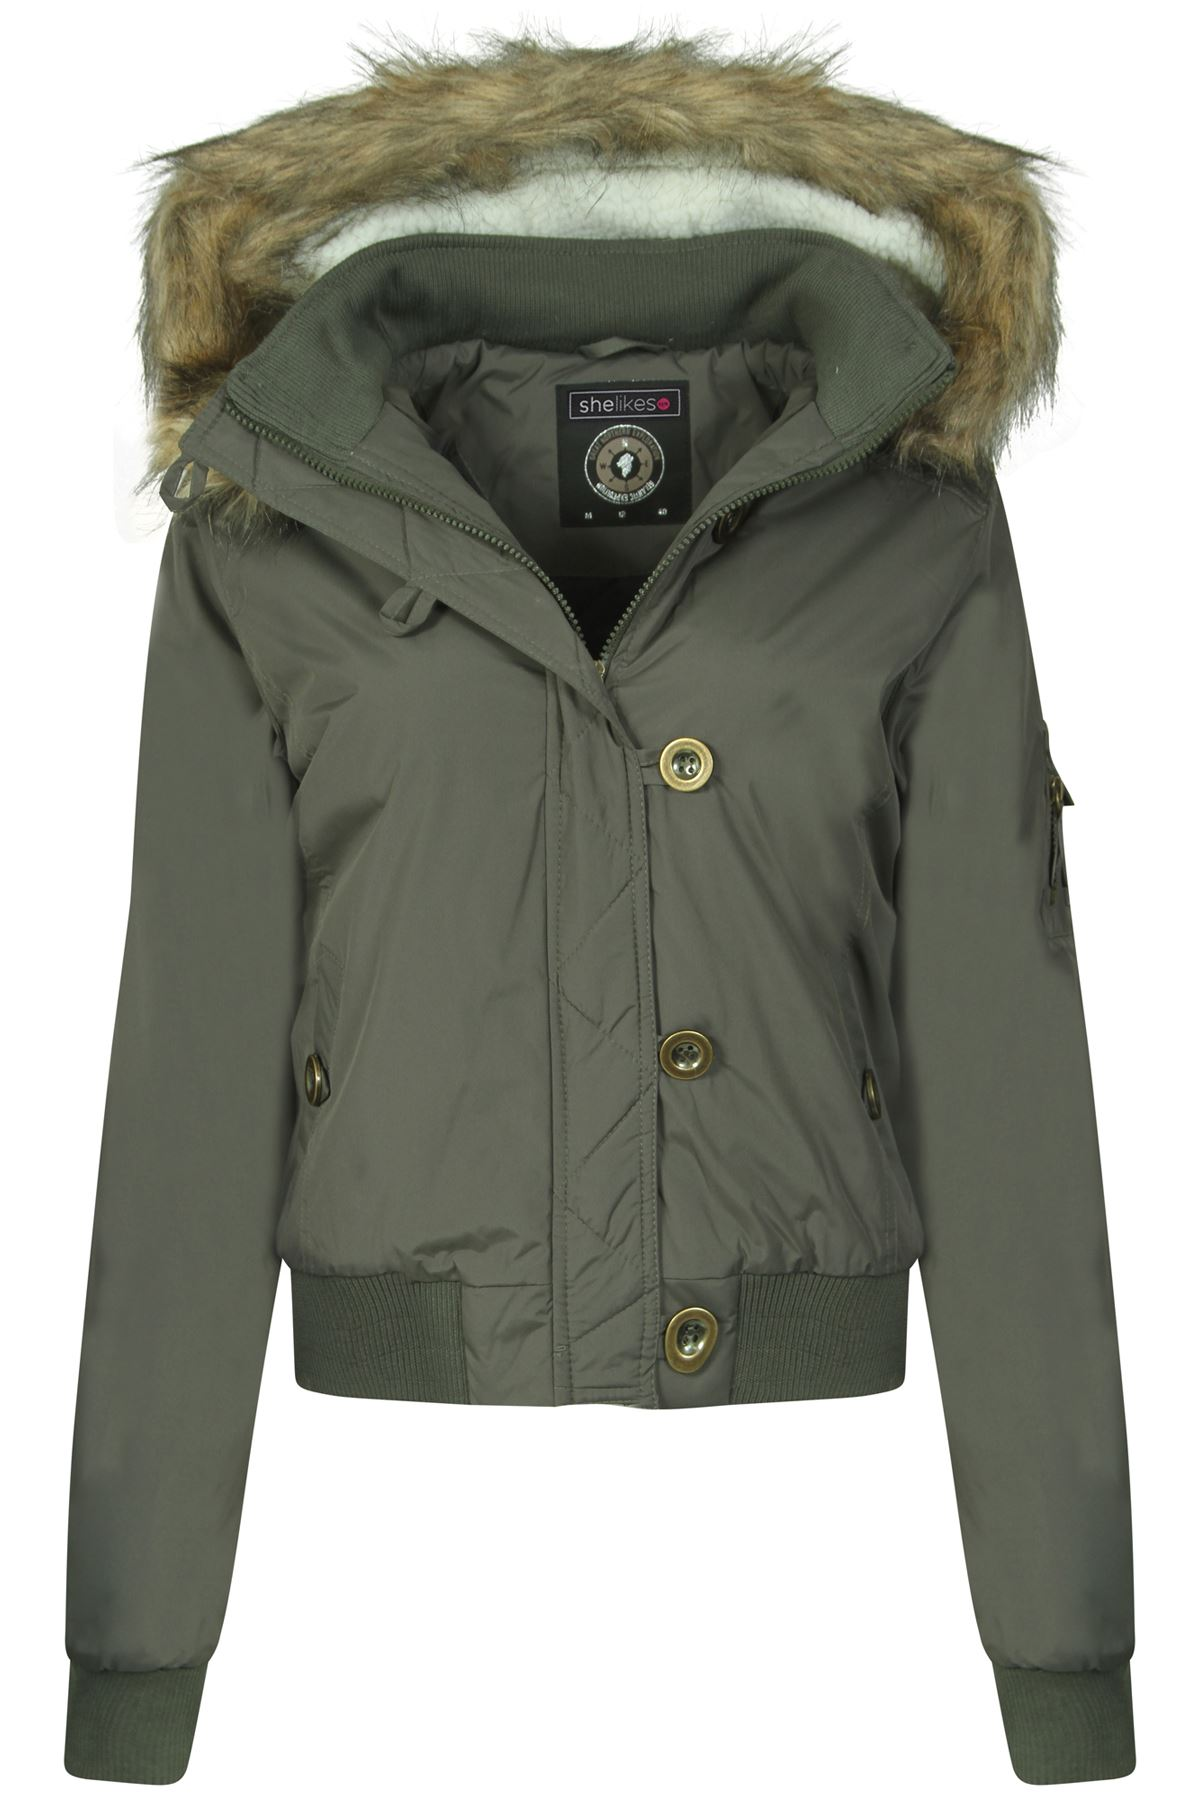 Find women's khaki parka with fur hood at ShopStyle. Shop the latest collection of women's khaki parka with fur hood from the most popular stores -.